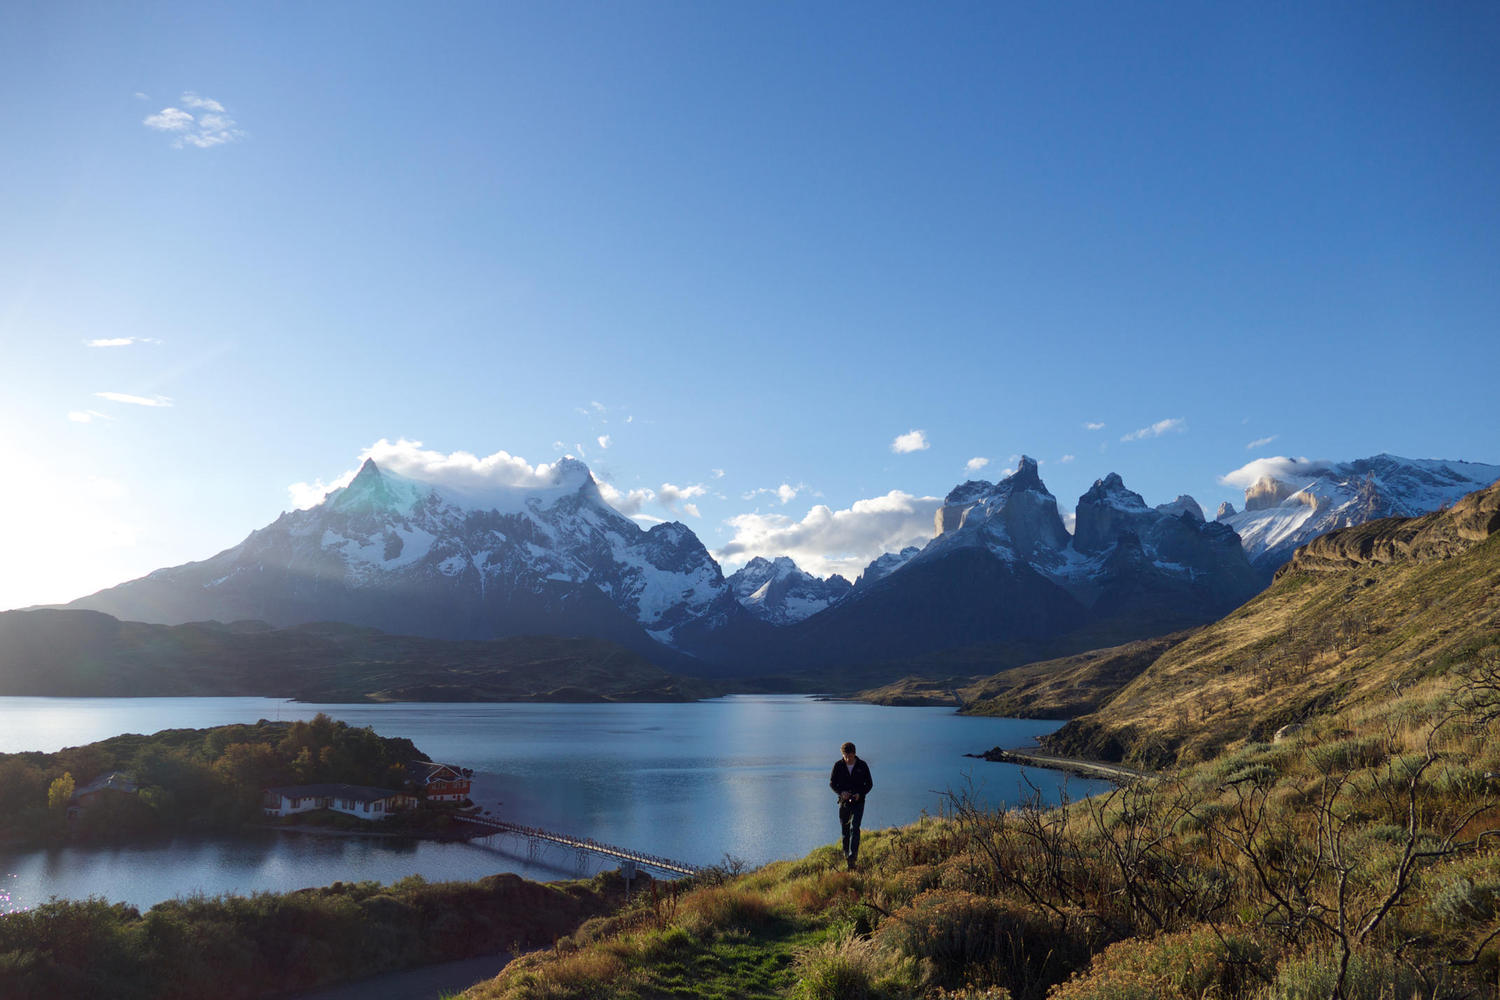 Looking out over Lago Pehoe, Torres del Paine